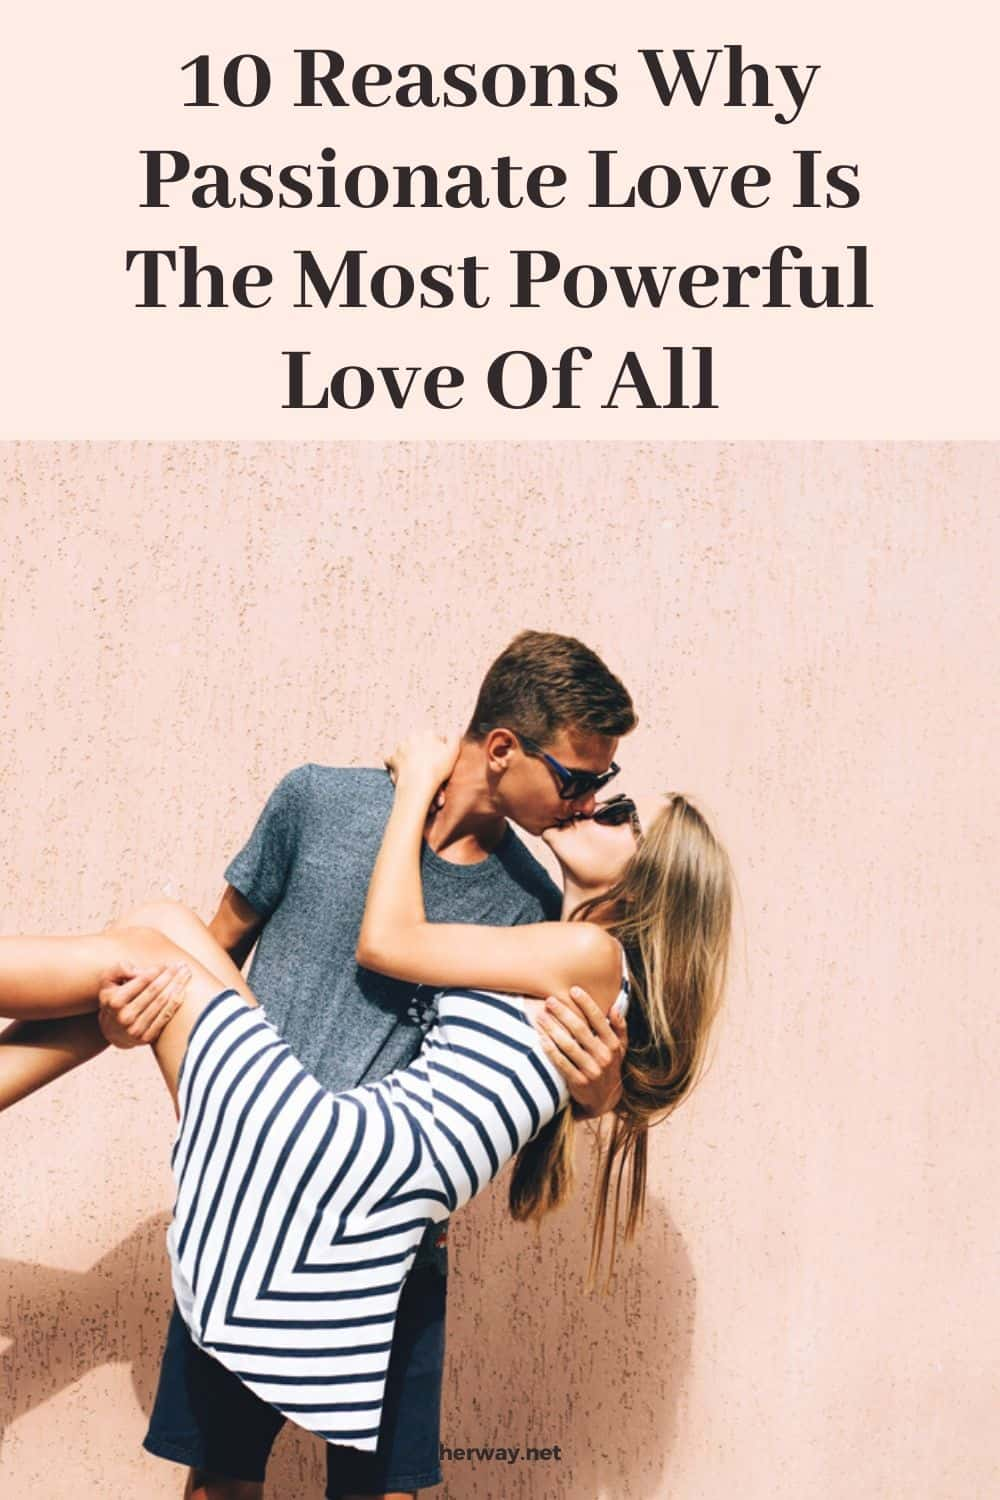 10 Reasons Why Passionate Love Is The Most Powerful Love Of All